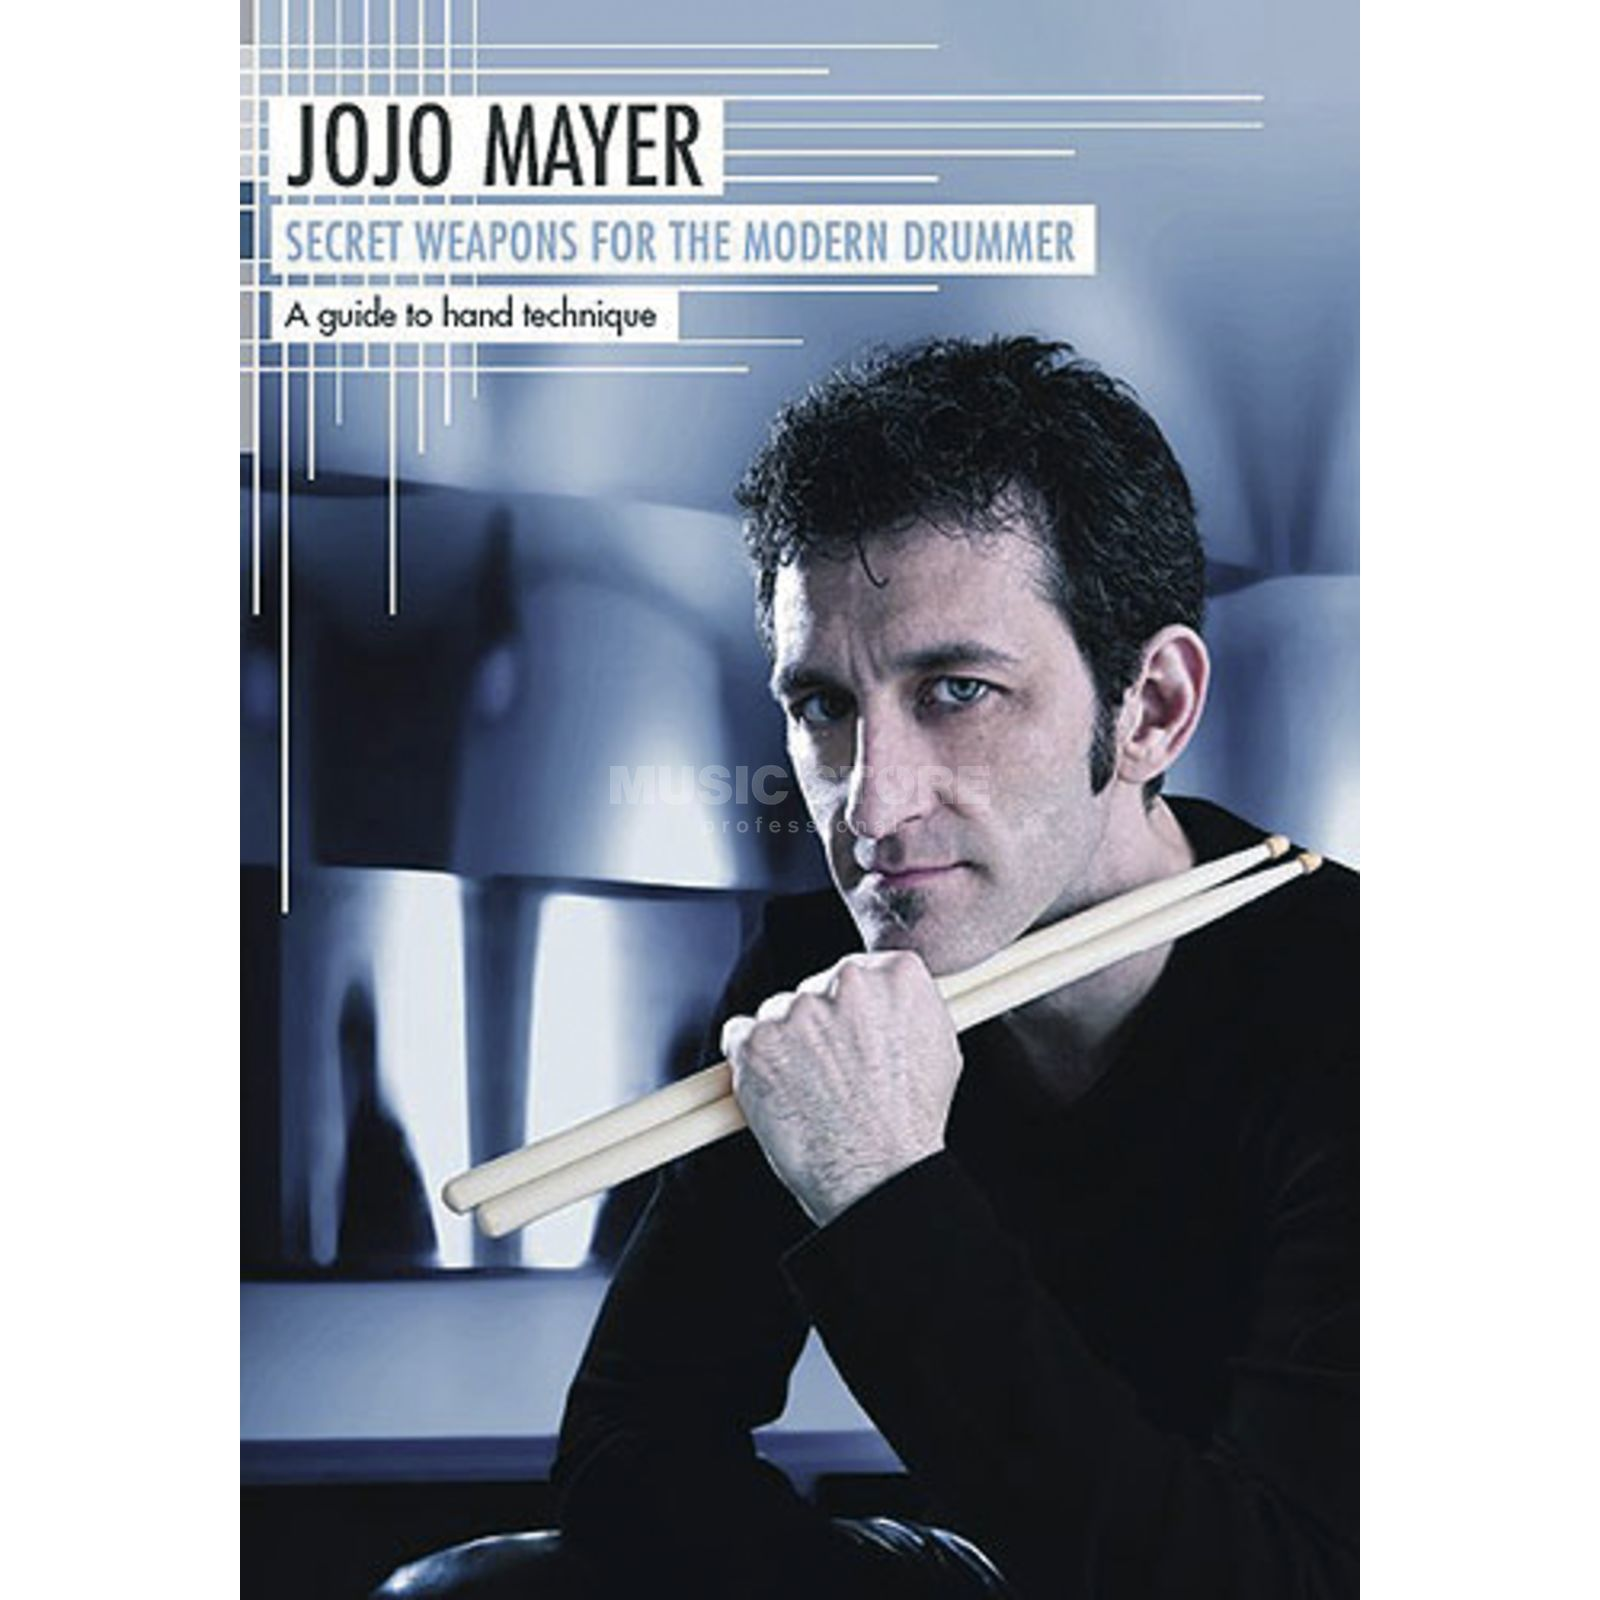 Hudson Music Jojo Mayer - Secret Weapons Handtechnik DVD, DEUTSCH Produktbillede